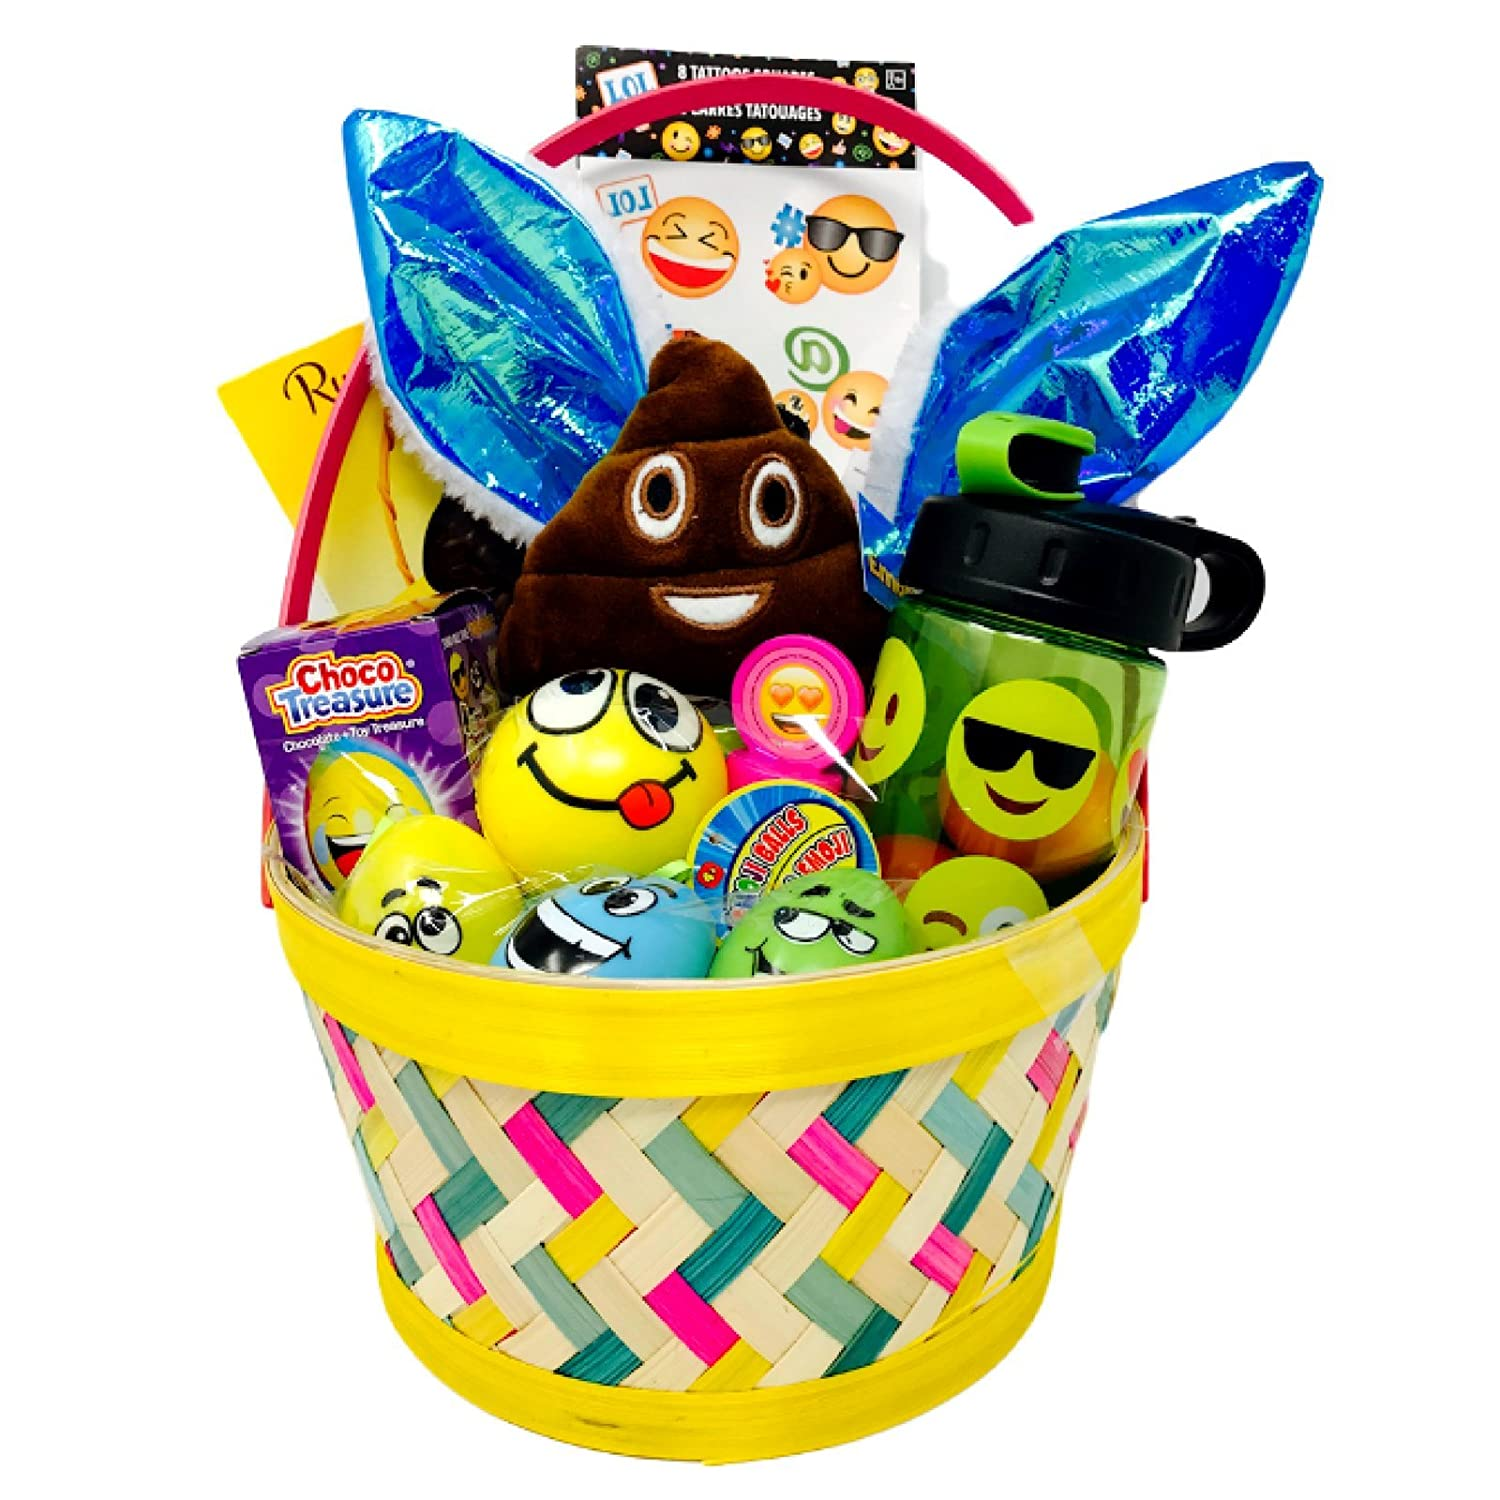 Pre-filled Smiley Easter Basket for Kids 20 Pieces Ready to Give for Emoji Fun!